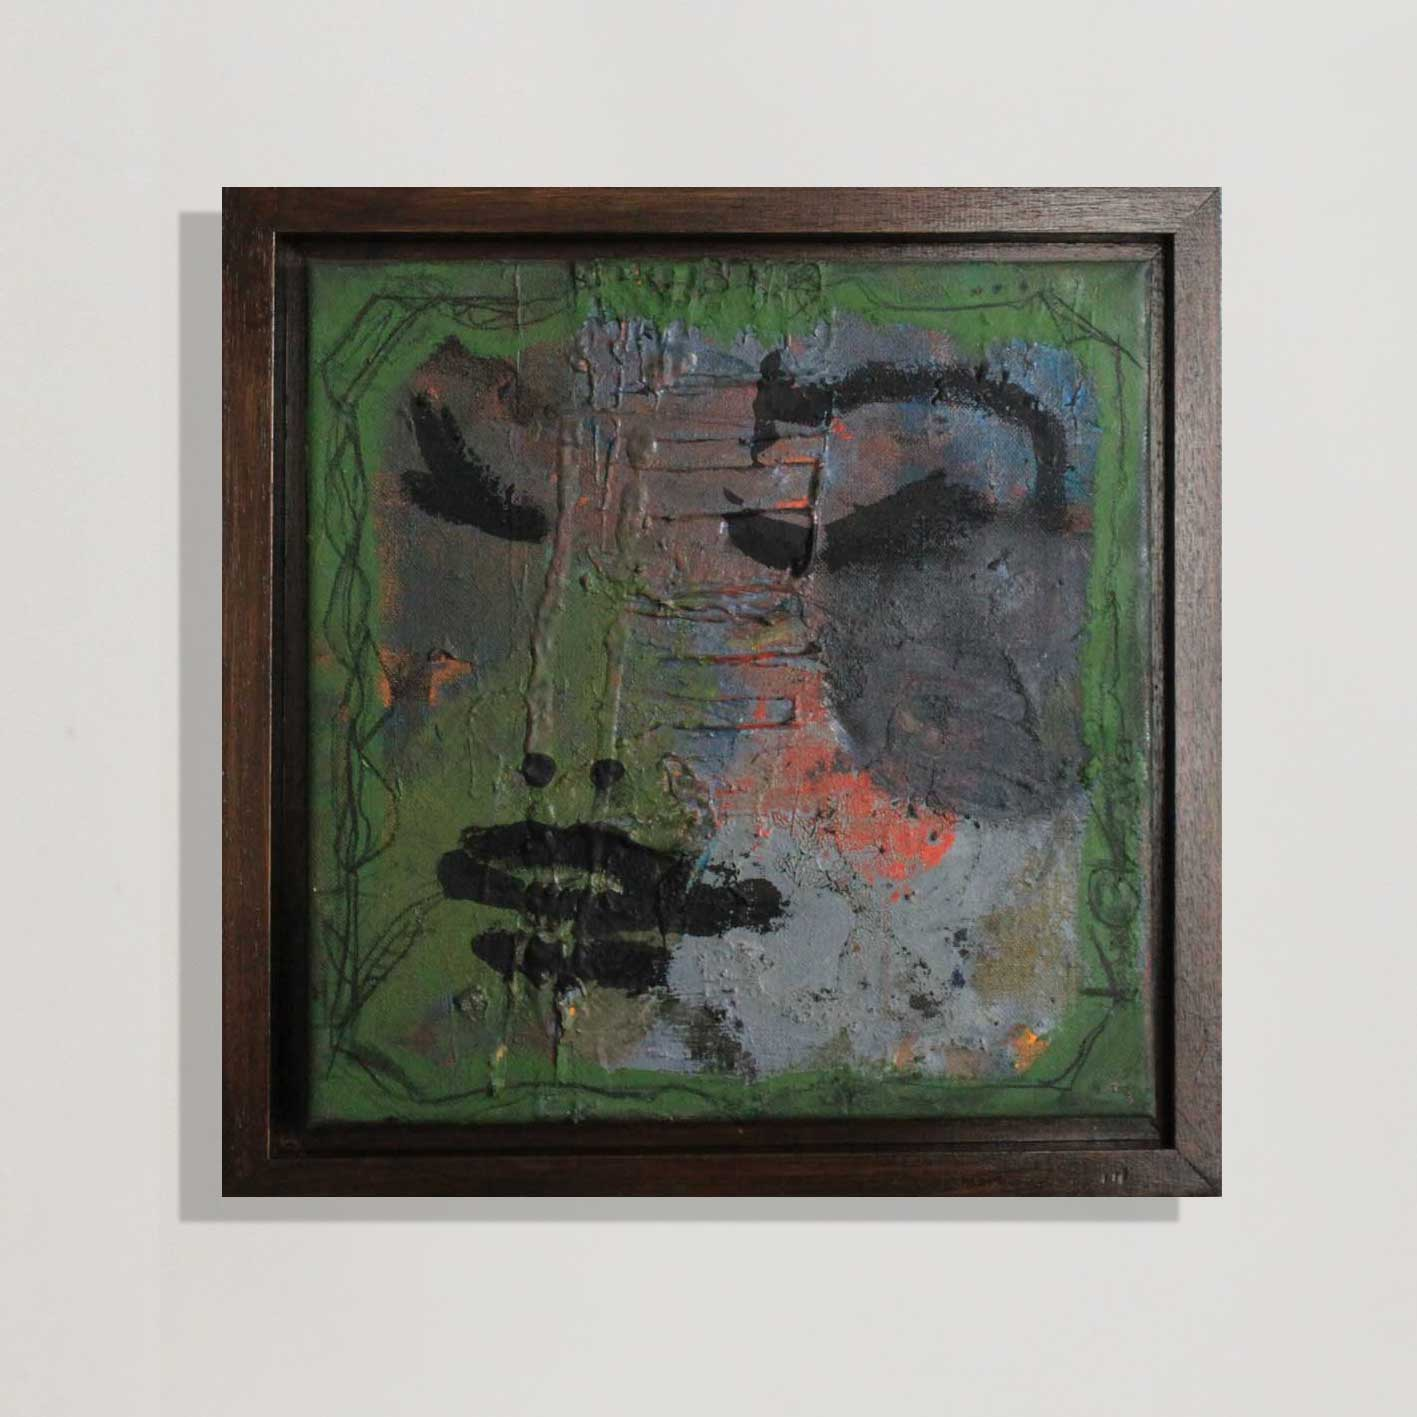 Nymphe, green blue oilpainting, framed, dark walnut - Kim Okura